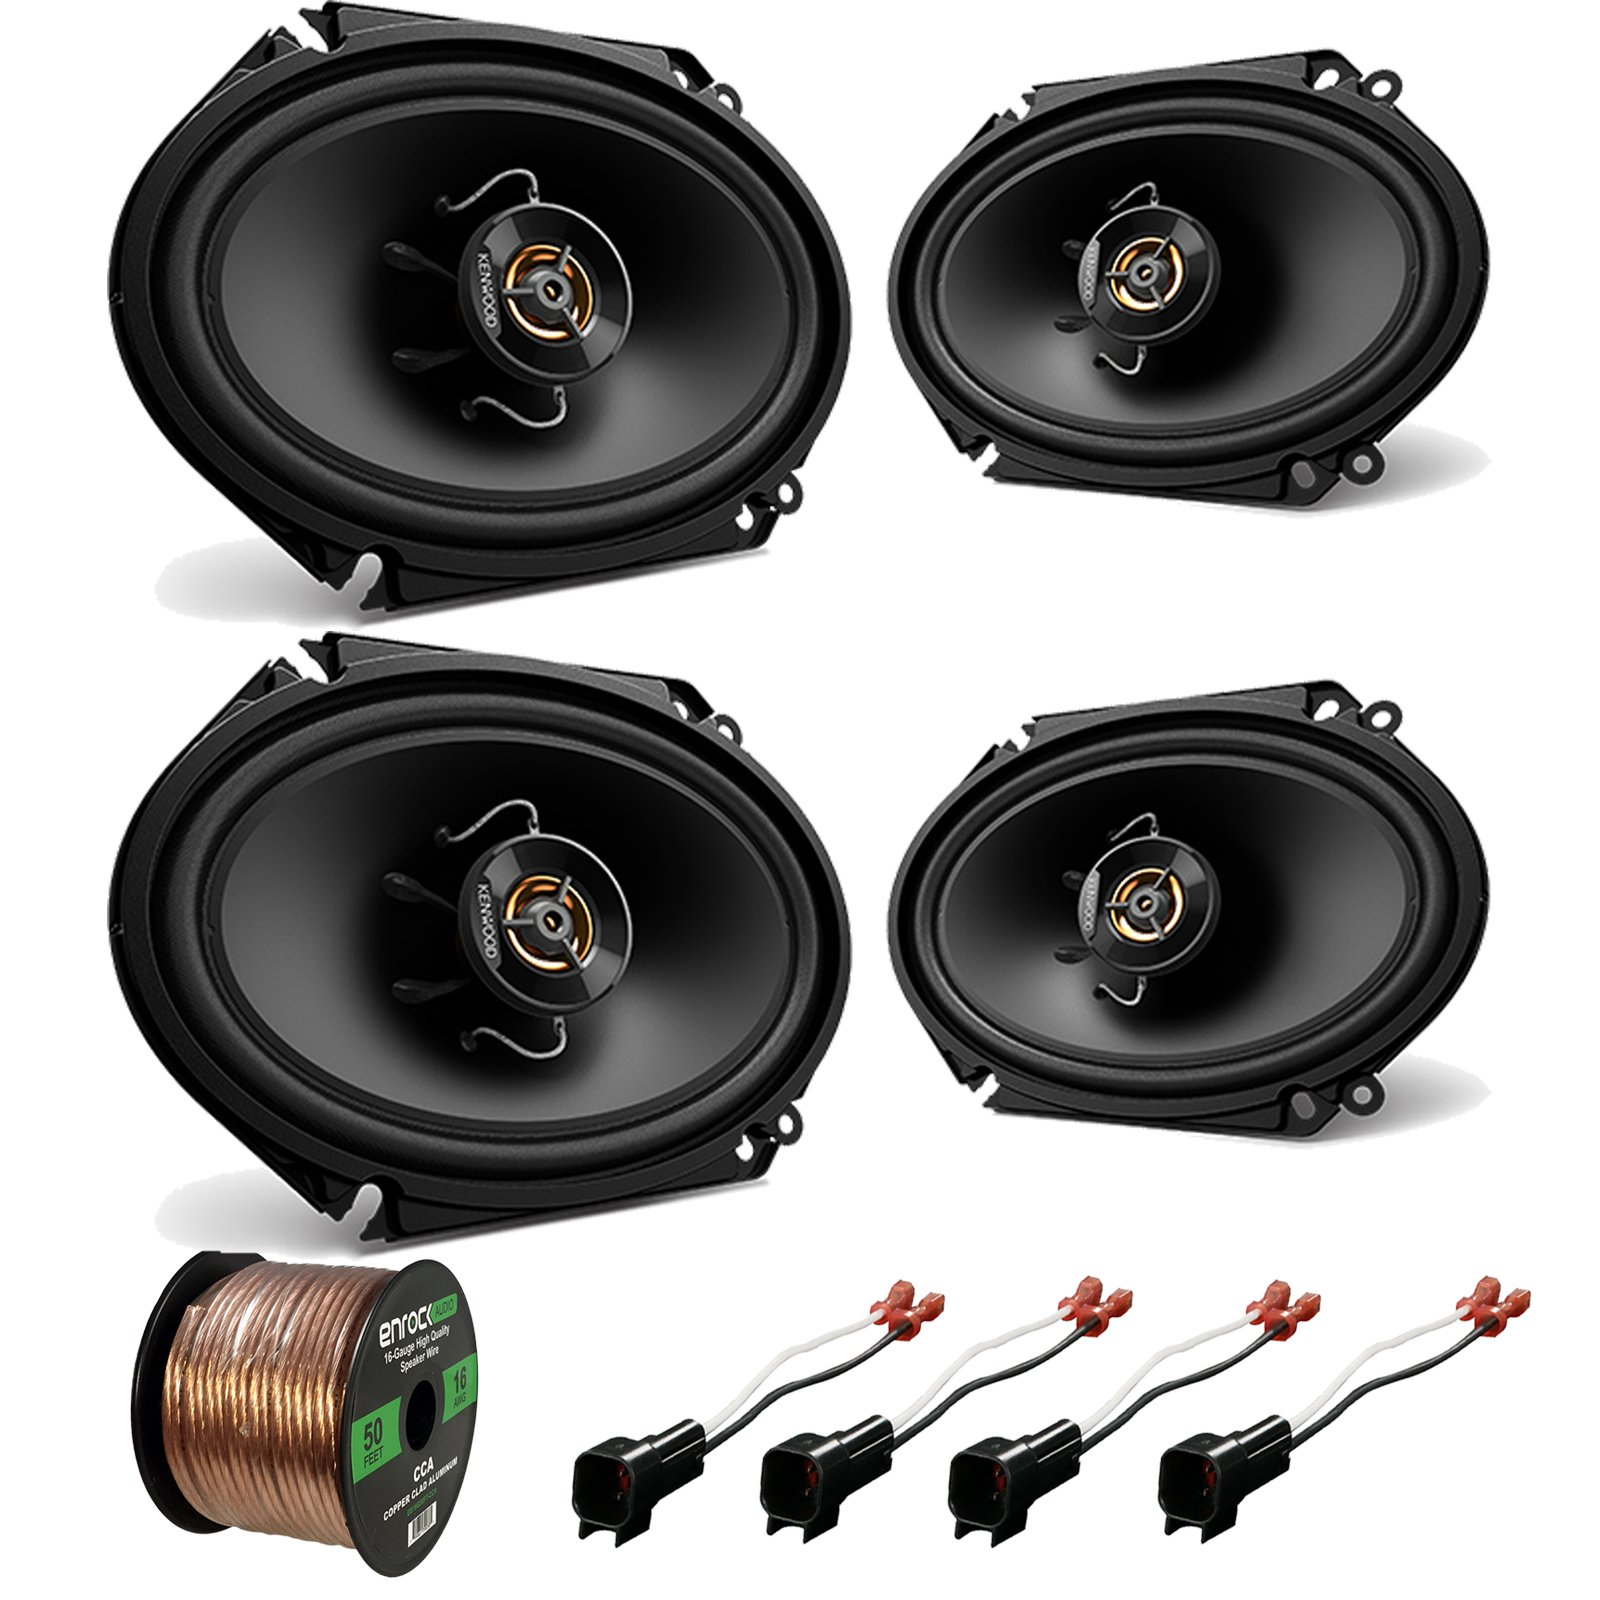 Car Speaker Set Combo Of 2 Kicker 6x8 Inch 450W 2-Way Car Coaxial Stereo Speakers Mercury Enrock 50ft 16g Speaker Wire Enrock Kicker Metra 43CSC684 72-5600 16G50FT 2 Metra 72-5600 Speaker Connector for Ford Mazda Lincoln